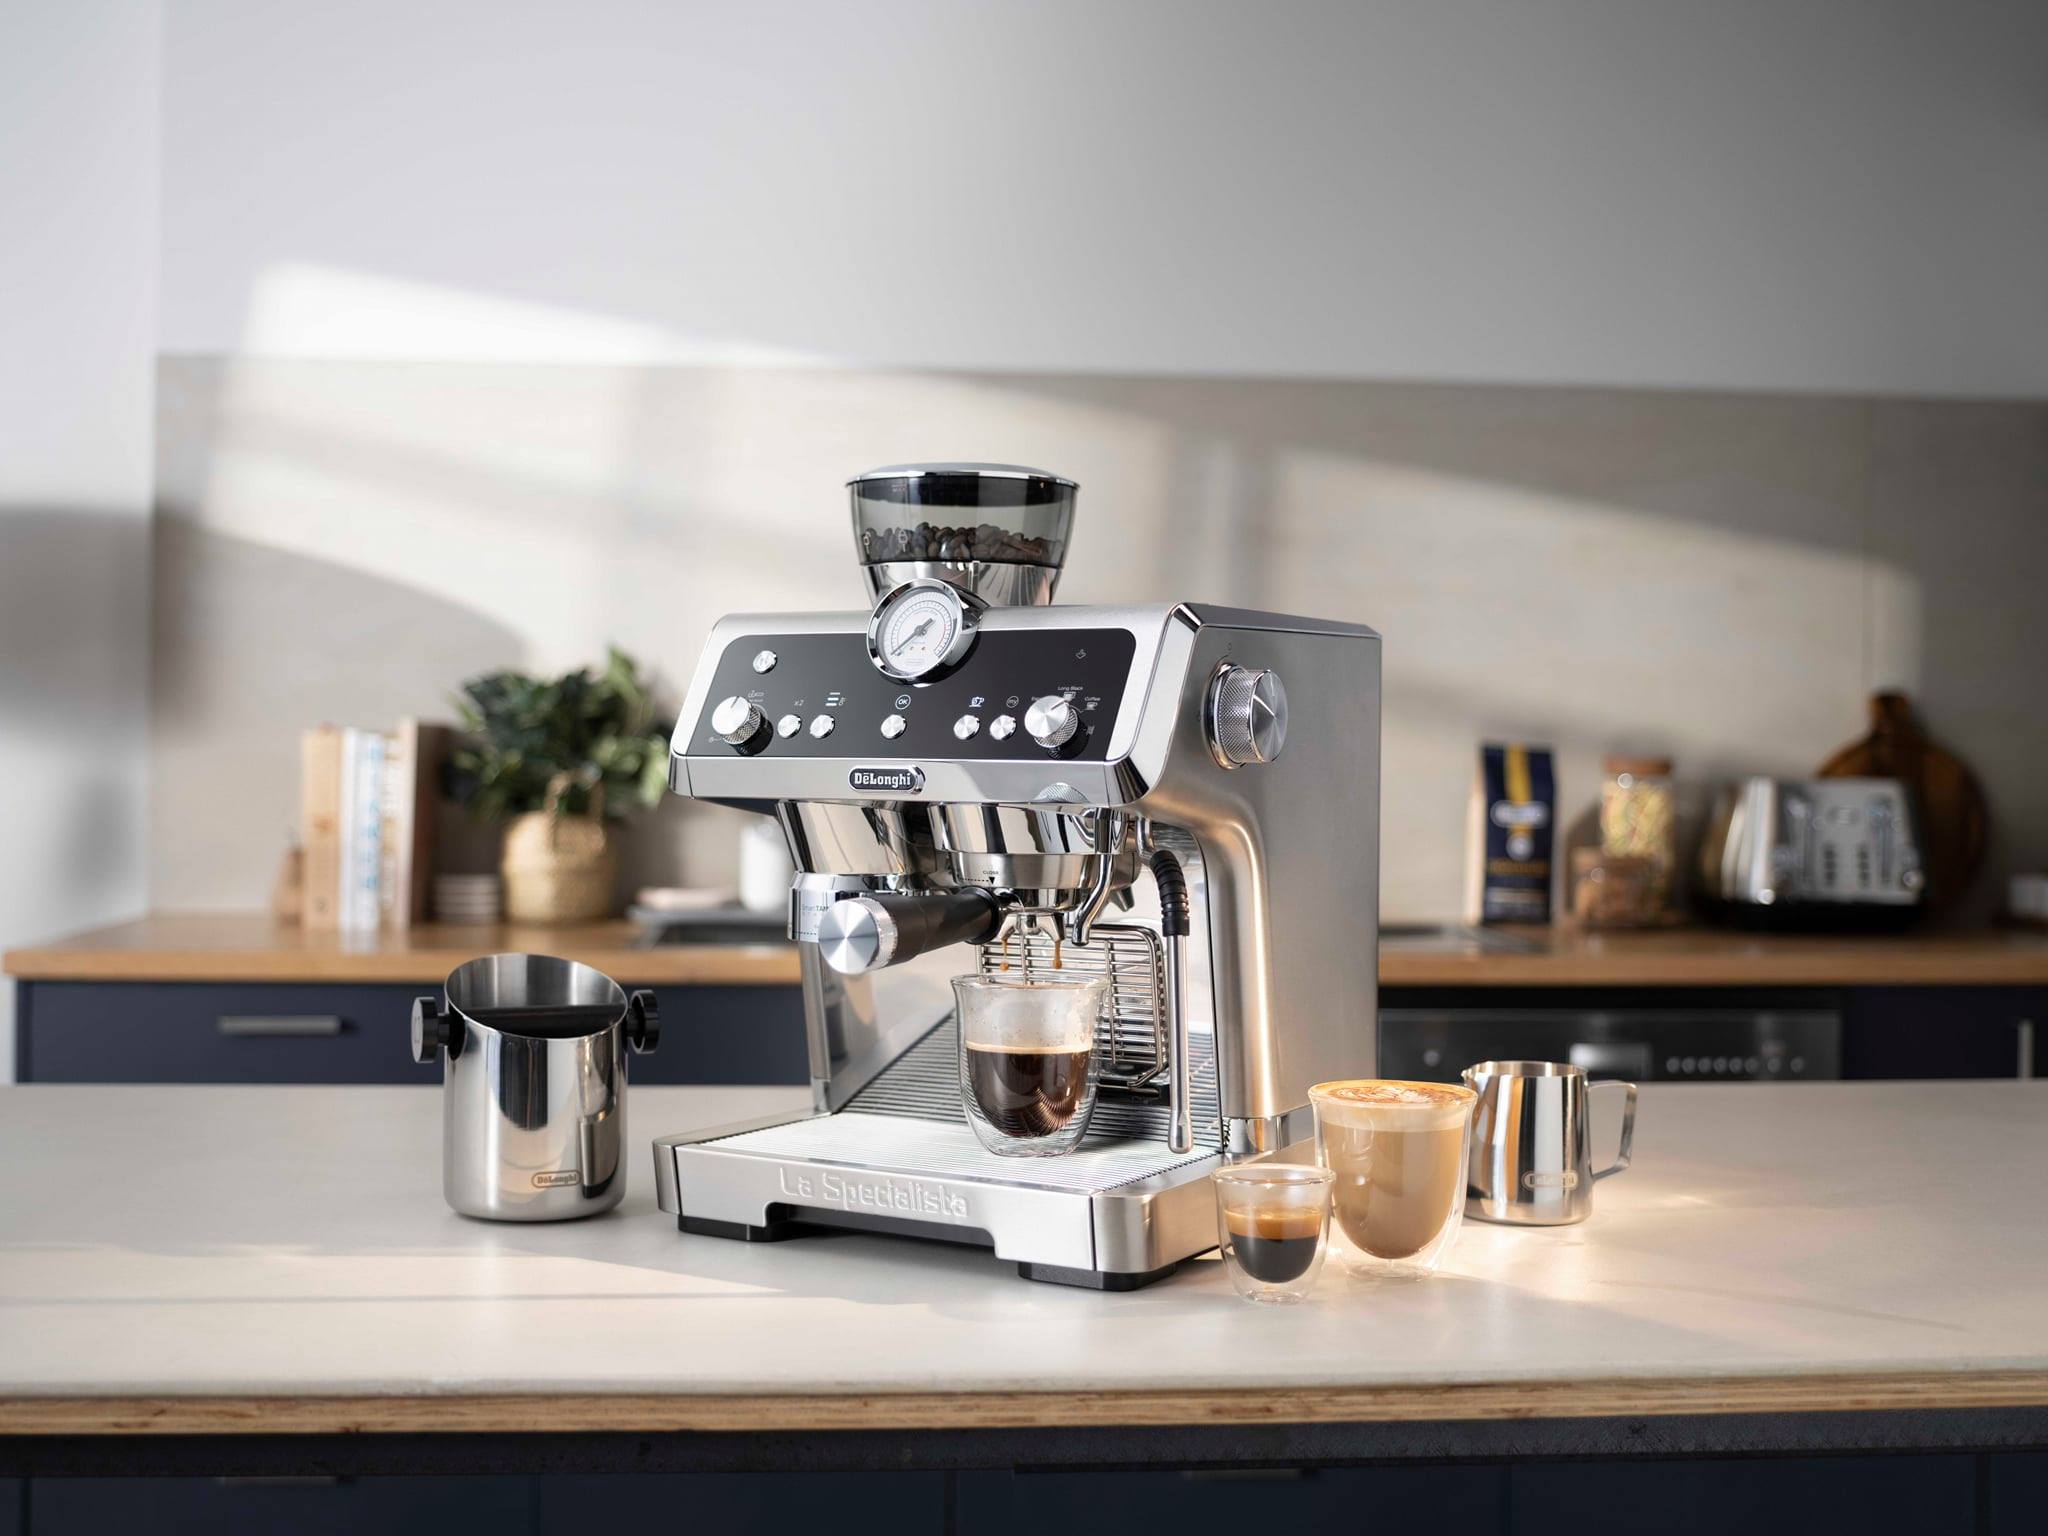 Which is the best brand of coffee machine?